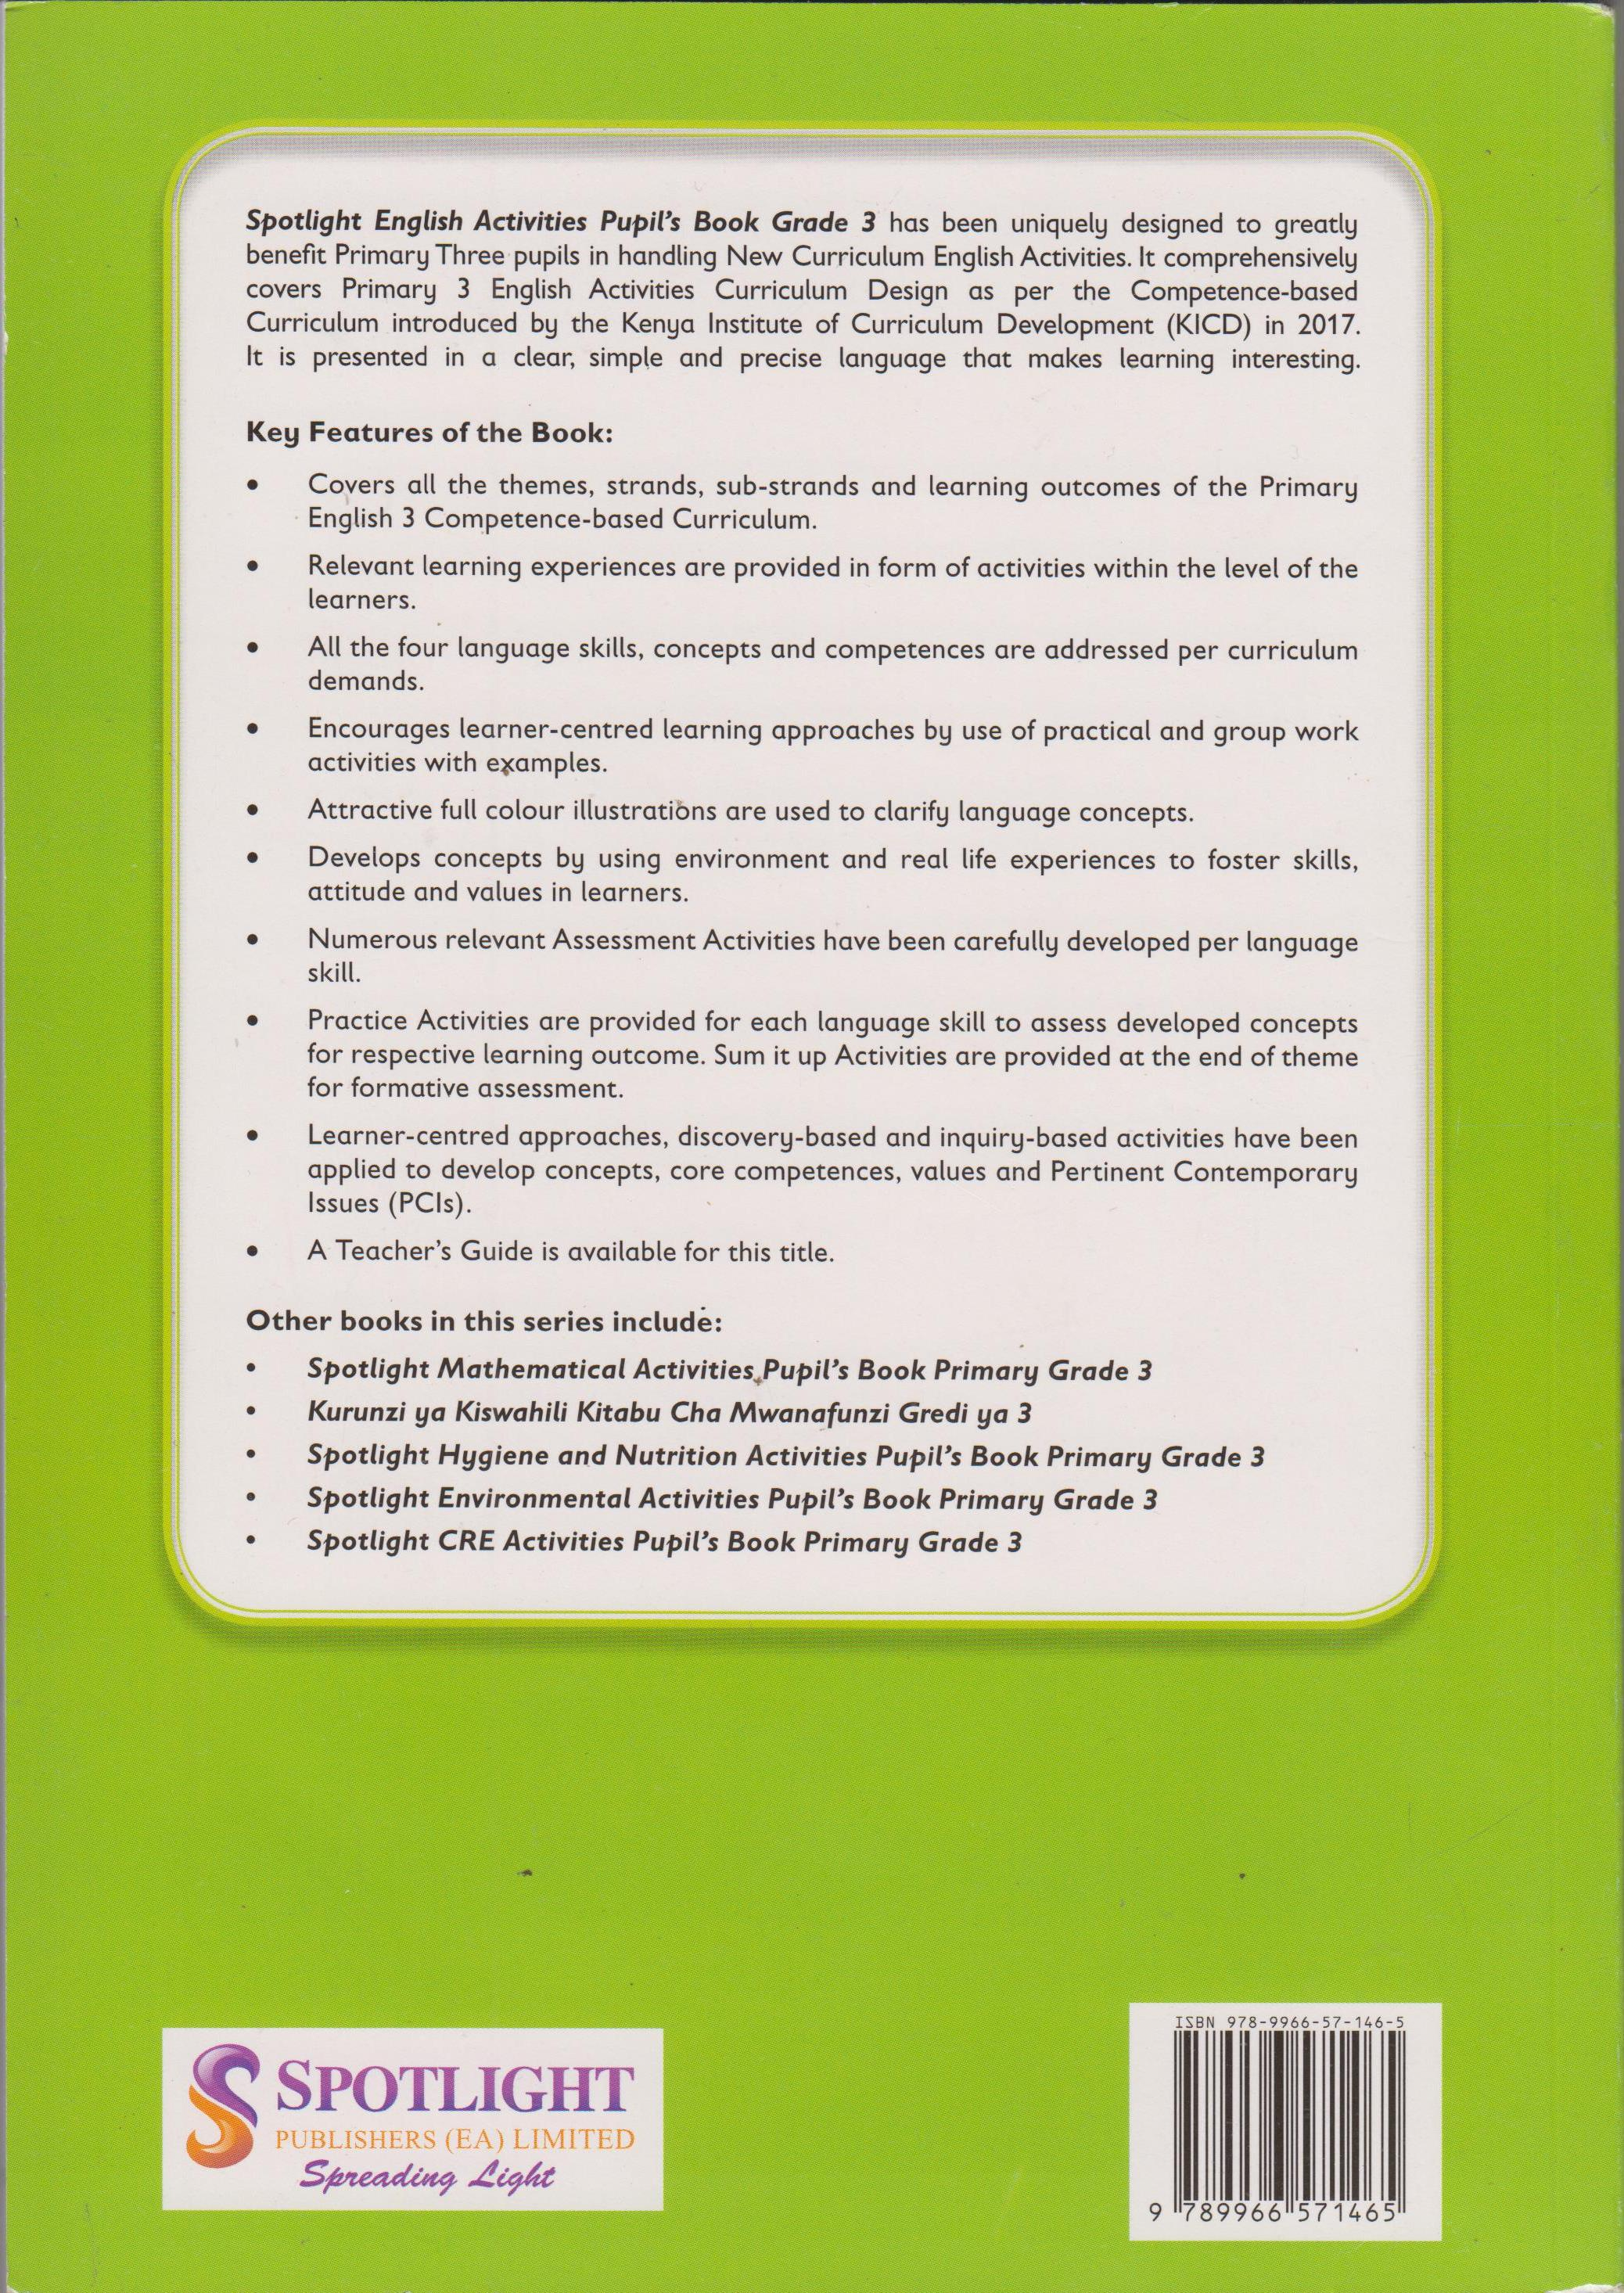 Spotlight English Activities Grade 3 | Books, Stationery, Computers,  Laptops and more  Buy online and get free delivery on orders above Ksh   2,000